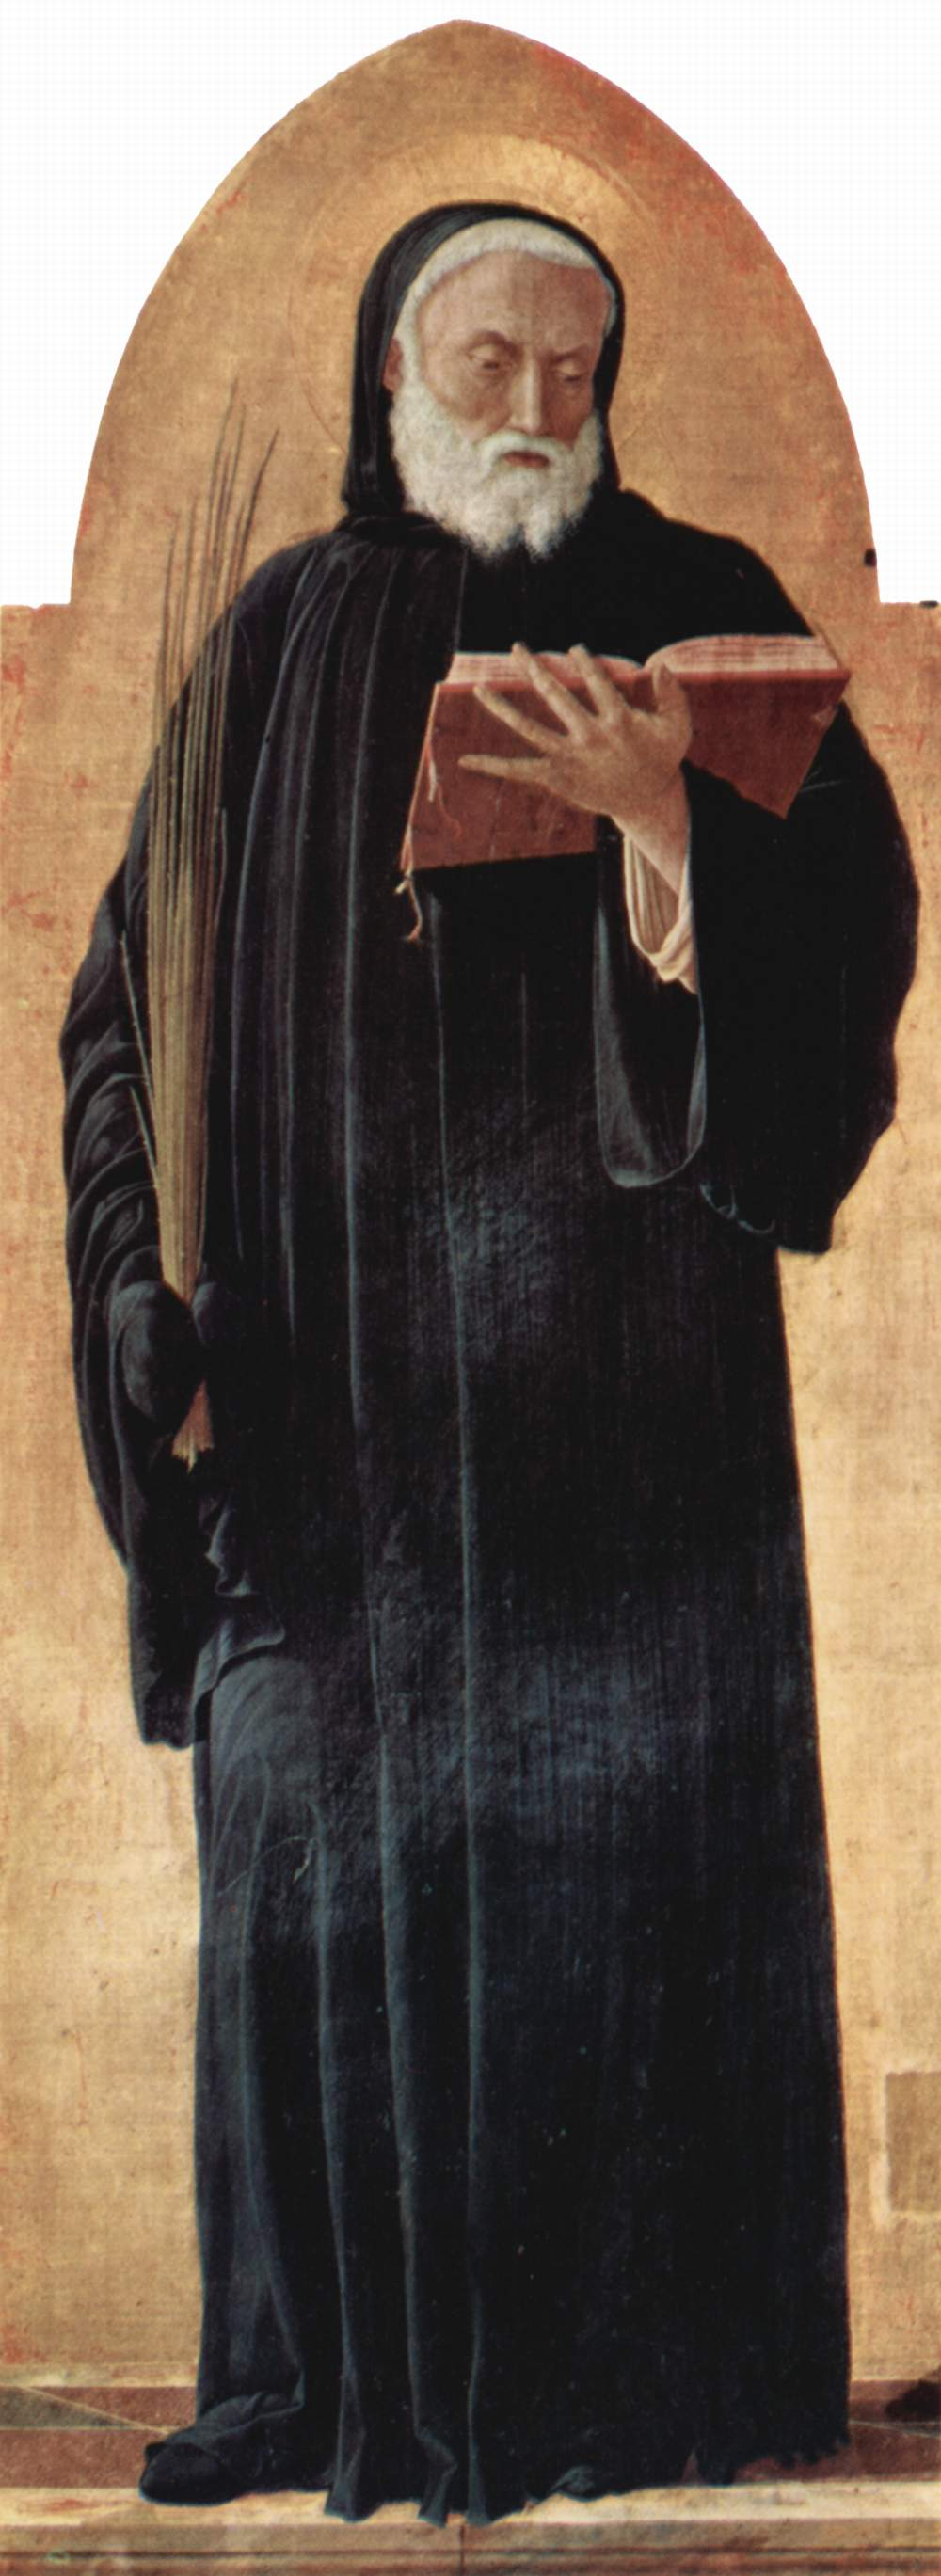 saint benedict bbw dating site Today is the feast day of saint benedict - father of western monasticism saint benedict,  https://www catholicsinglescom/blog/dating-si ngle-friends/ .